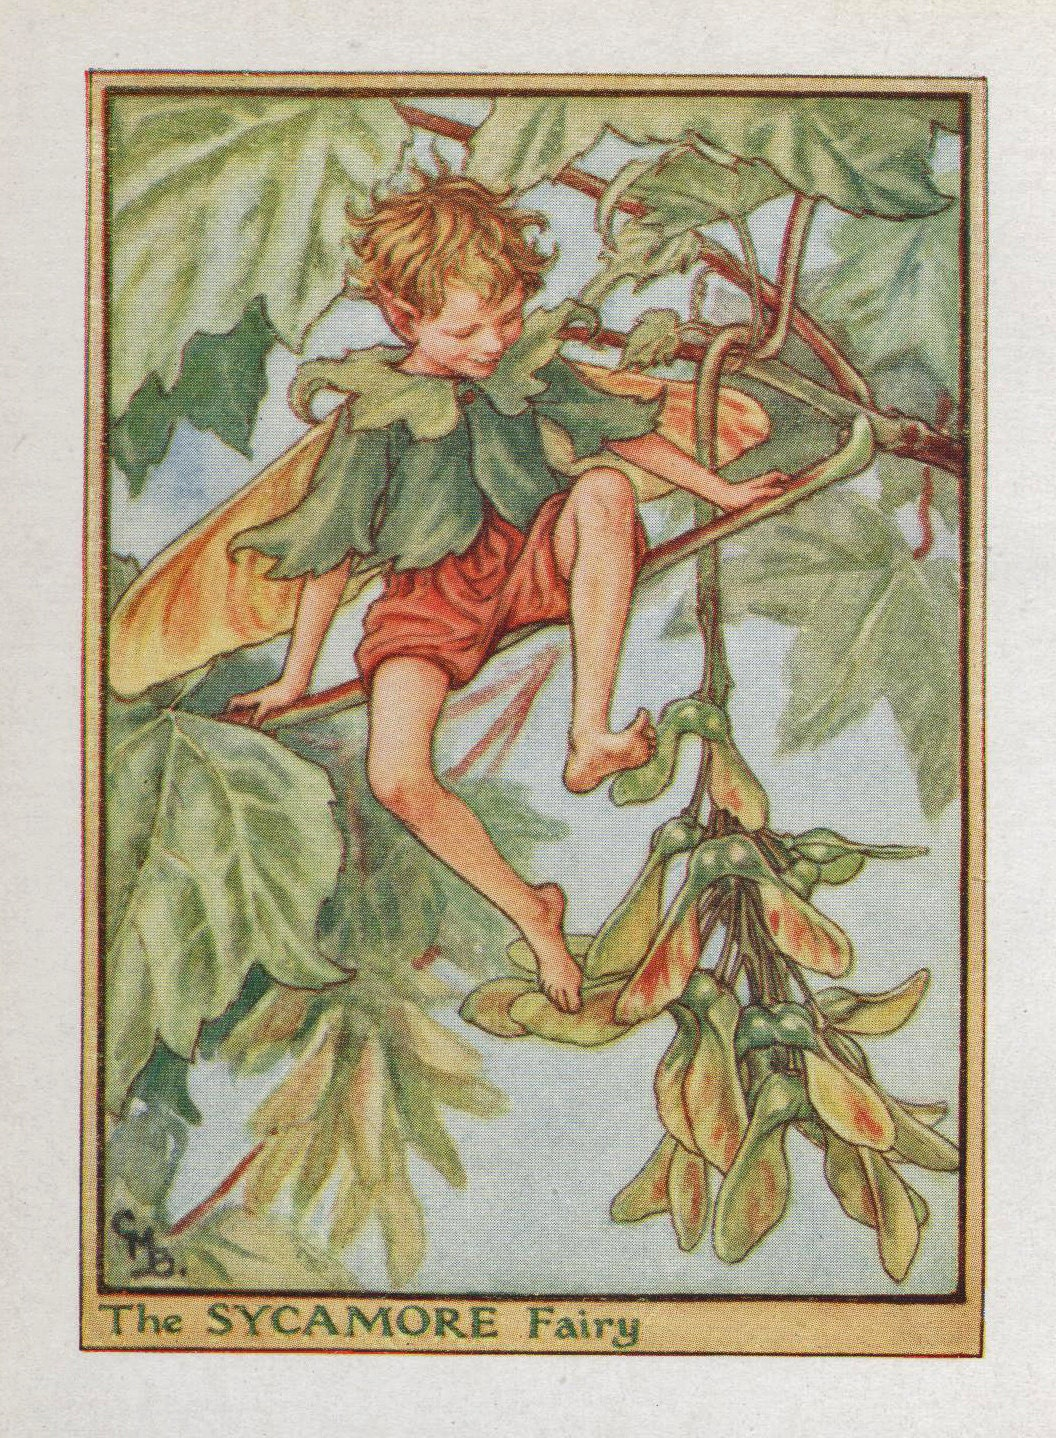 Flower Fairies THE SYCAMORE FAIRY Vintage Print c1930 by Cicely Mary Barker